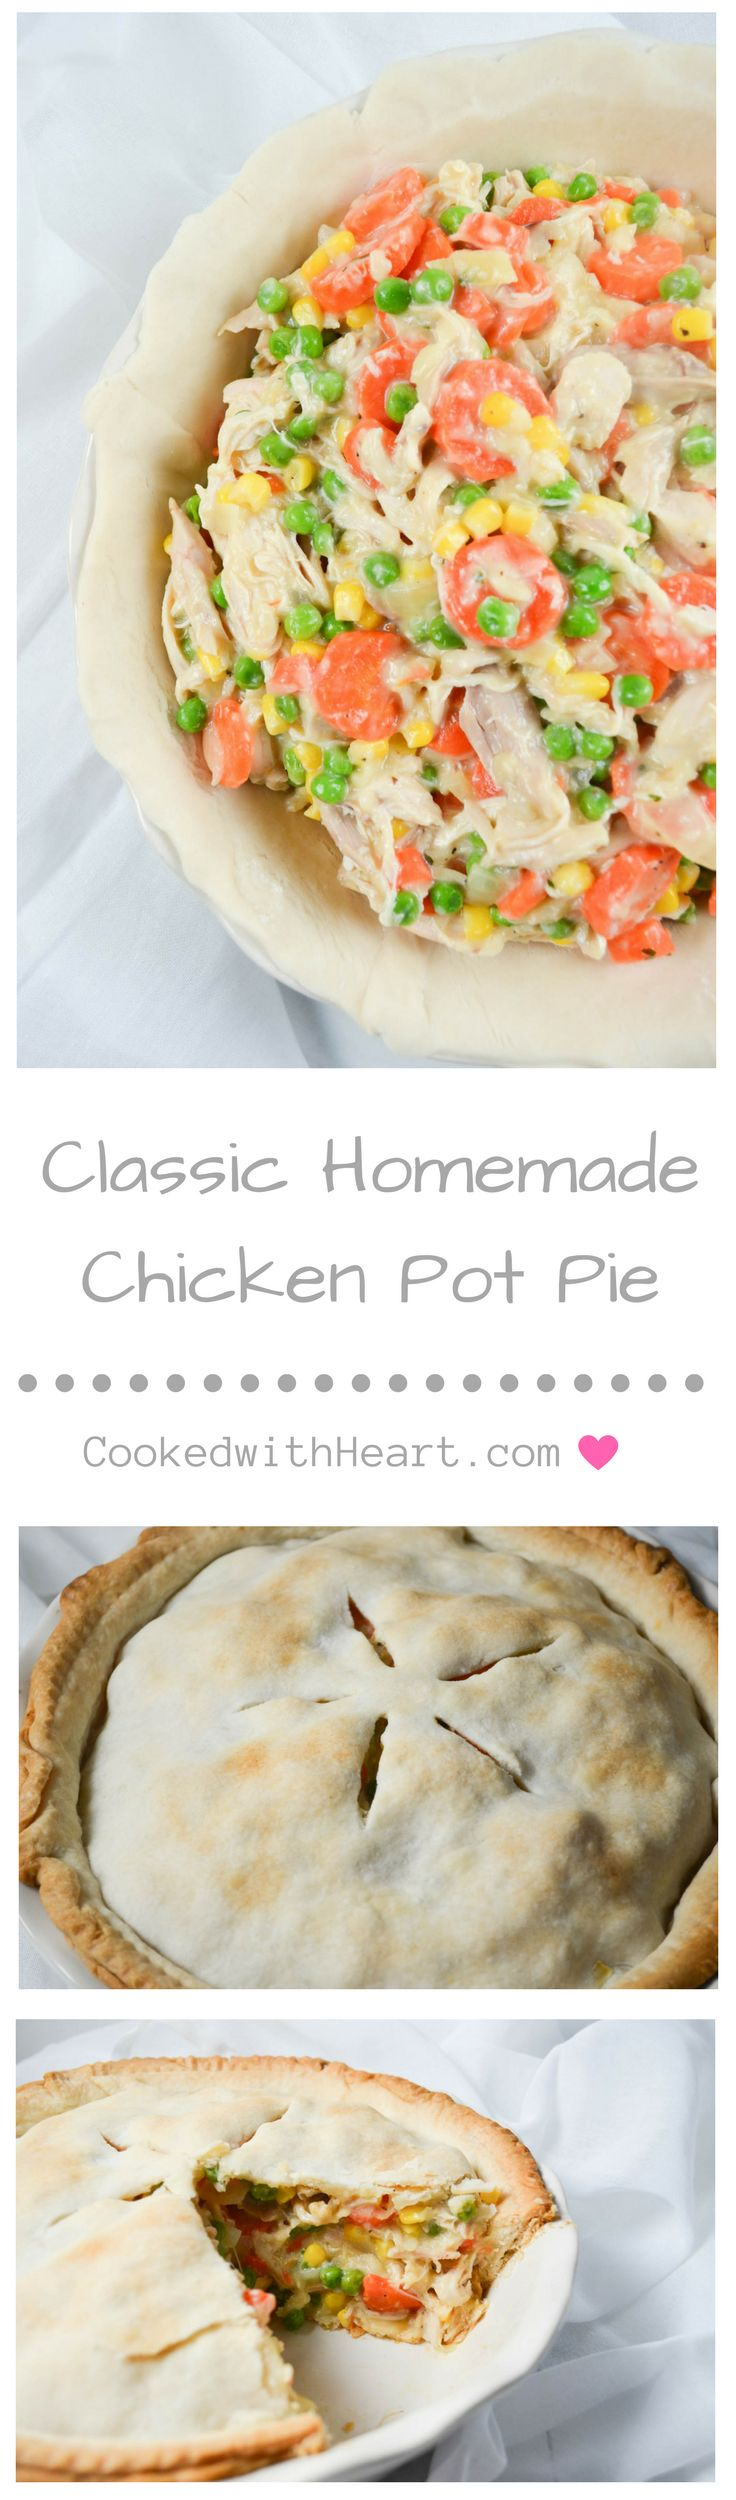 Classic Homemade Chicken Pot Pie packed with rotisserie chicken and loaded with tons of vegetables!